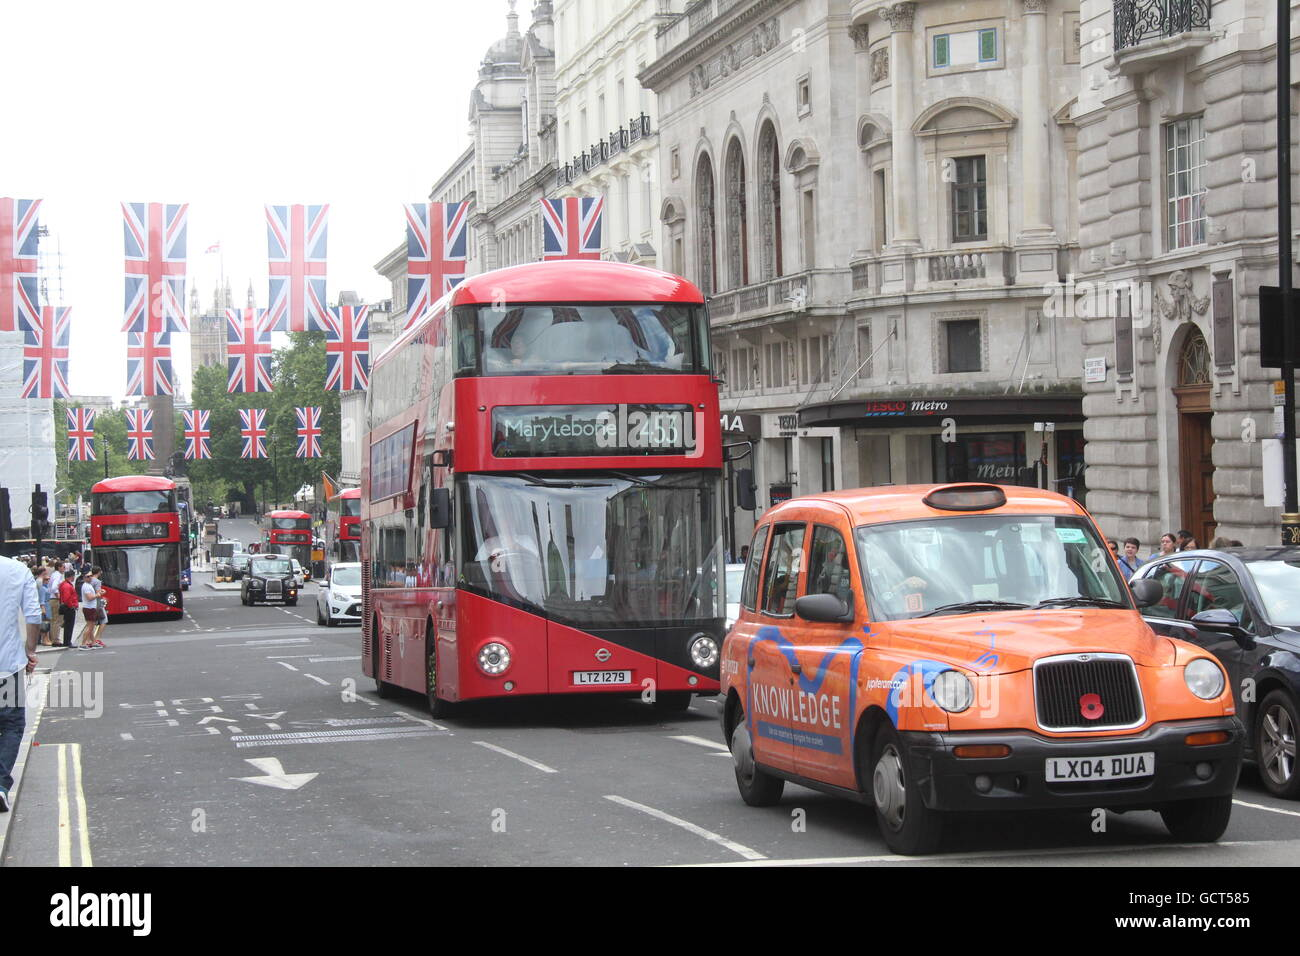 A LONDON TAXI ON ADVERT LIVERY AND A RED NEW ROUTEMASTER LONDON BUS IN CENTRAL LONDON - Stock Image